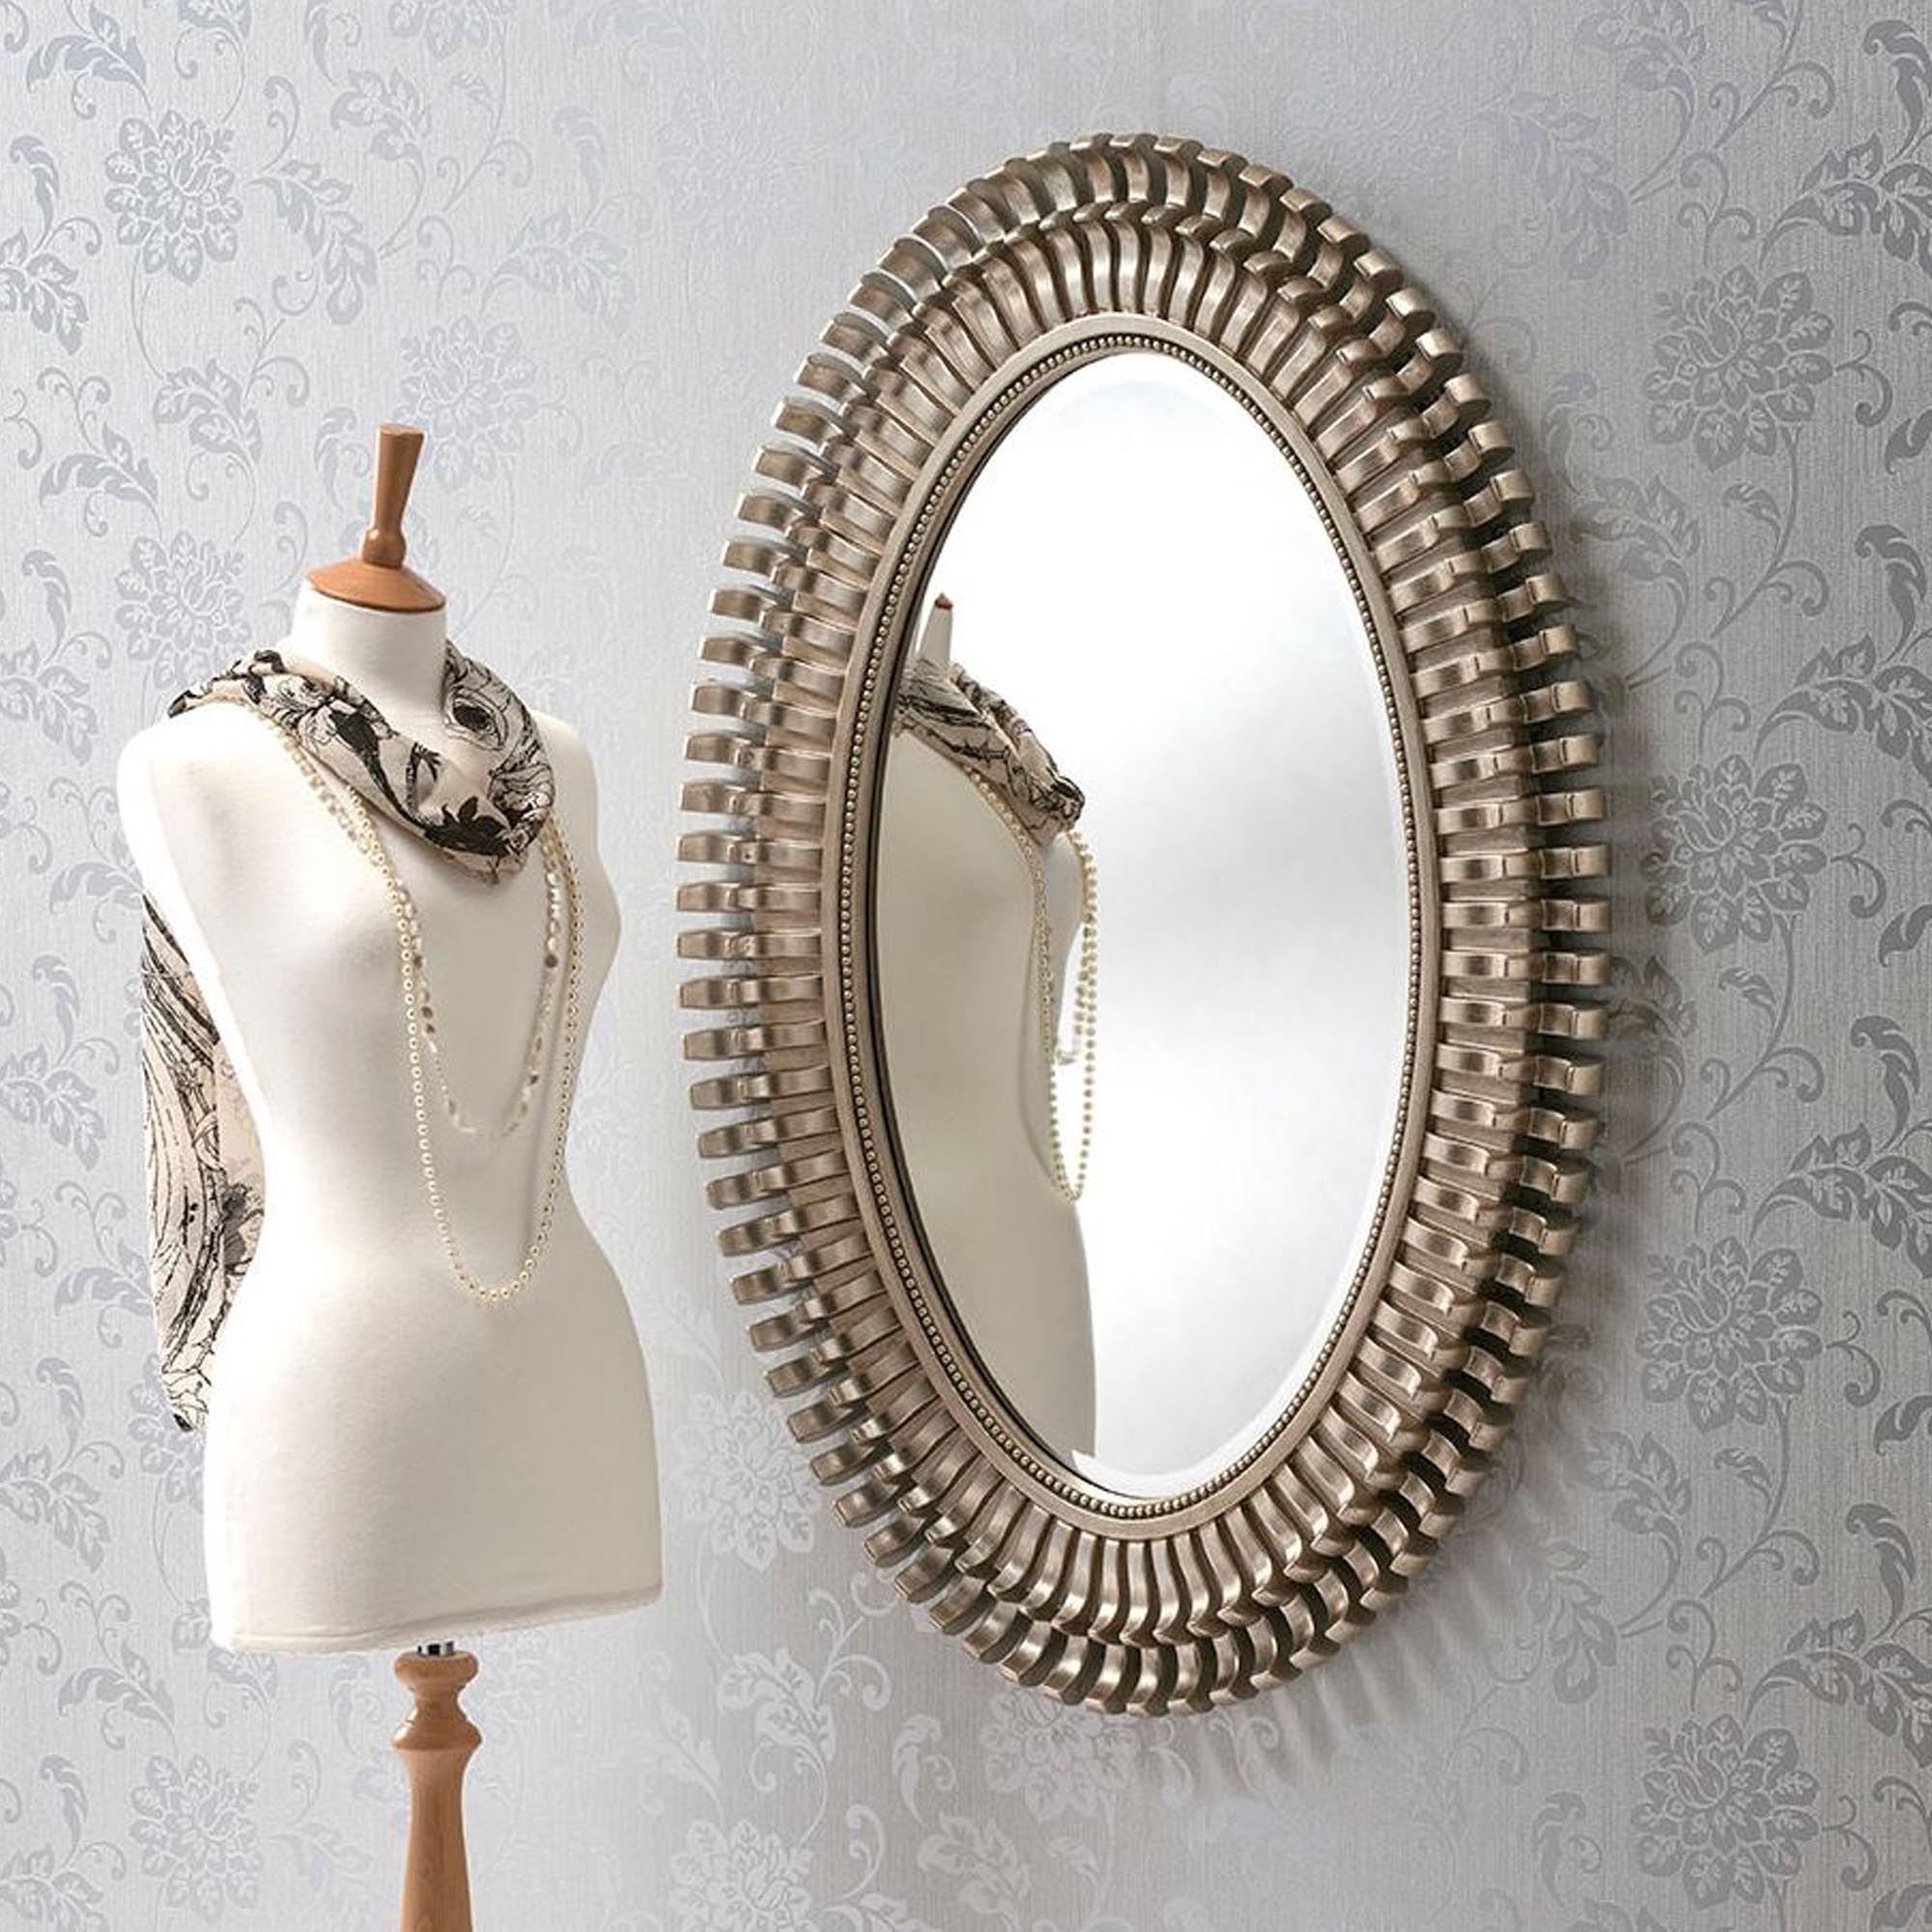 Oval Contemporary Antique Silver Wall Mirror Throughout 2019 Antique Silver Wall Mirrors (Gallery 18 of 20)